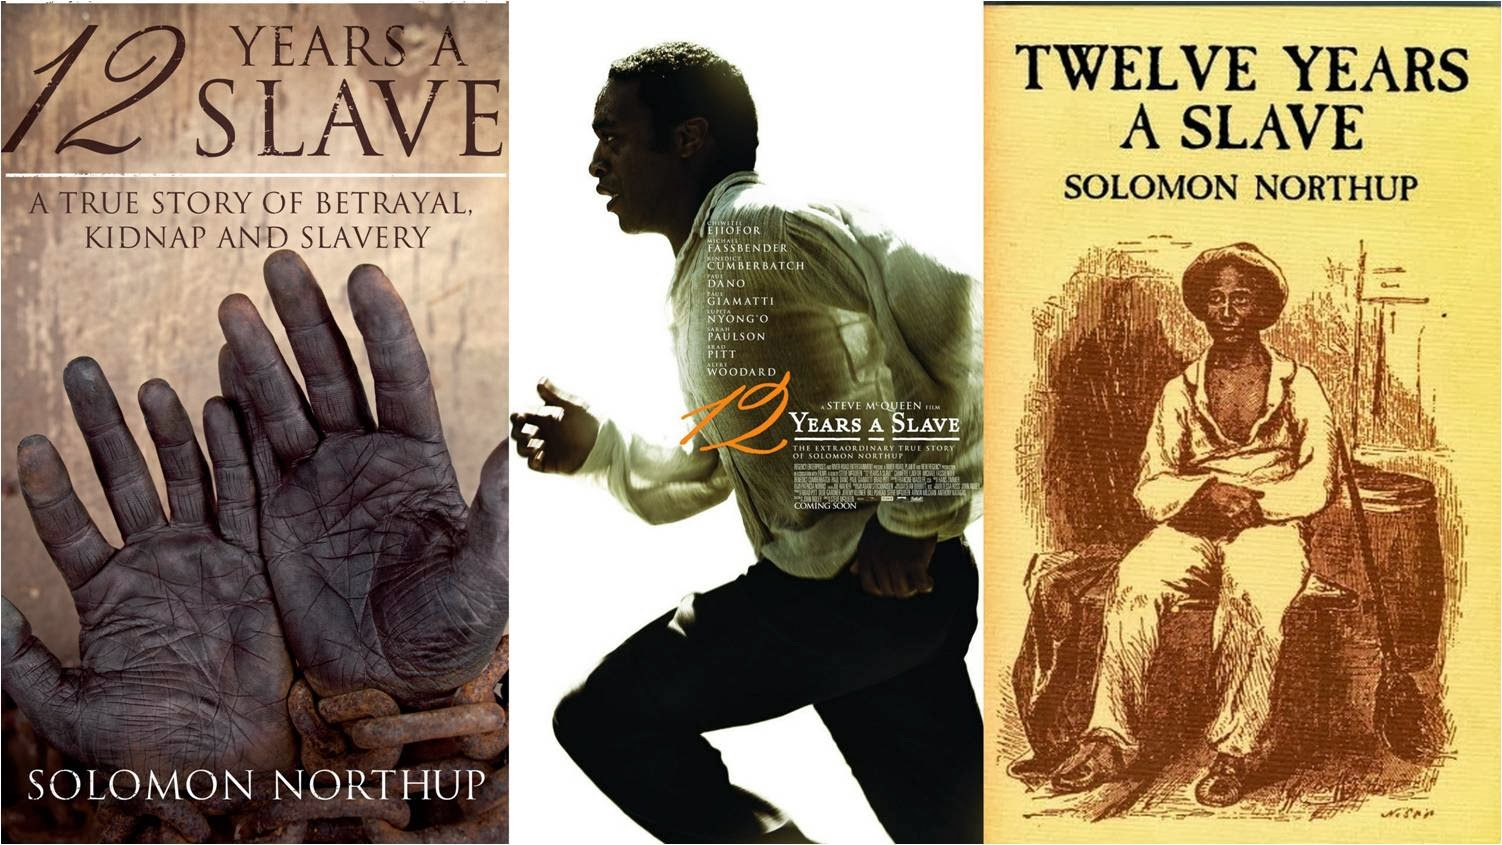 Posters of 12 Years a Slave by Solomon Northup